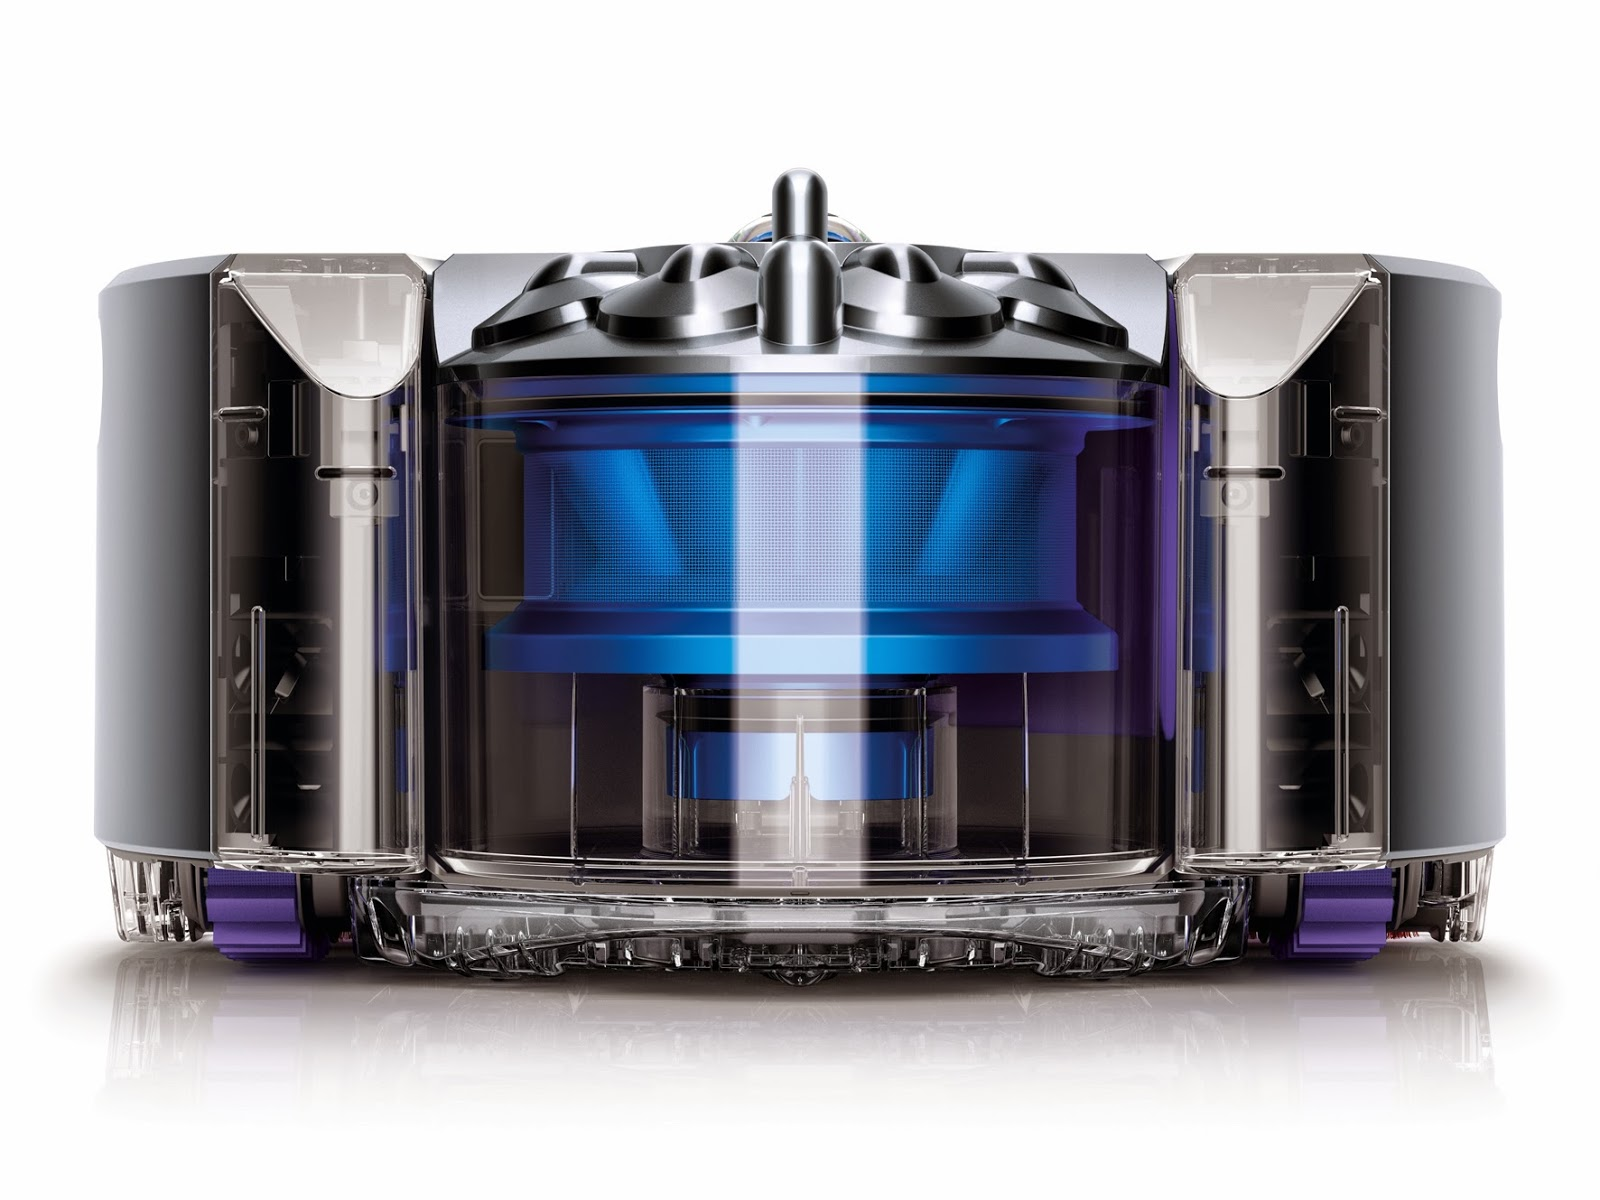 Atomlabor Blog on Tour - IFA 2014 |  Dyson 360eye Robot Vacuum Cleaner